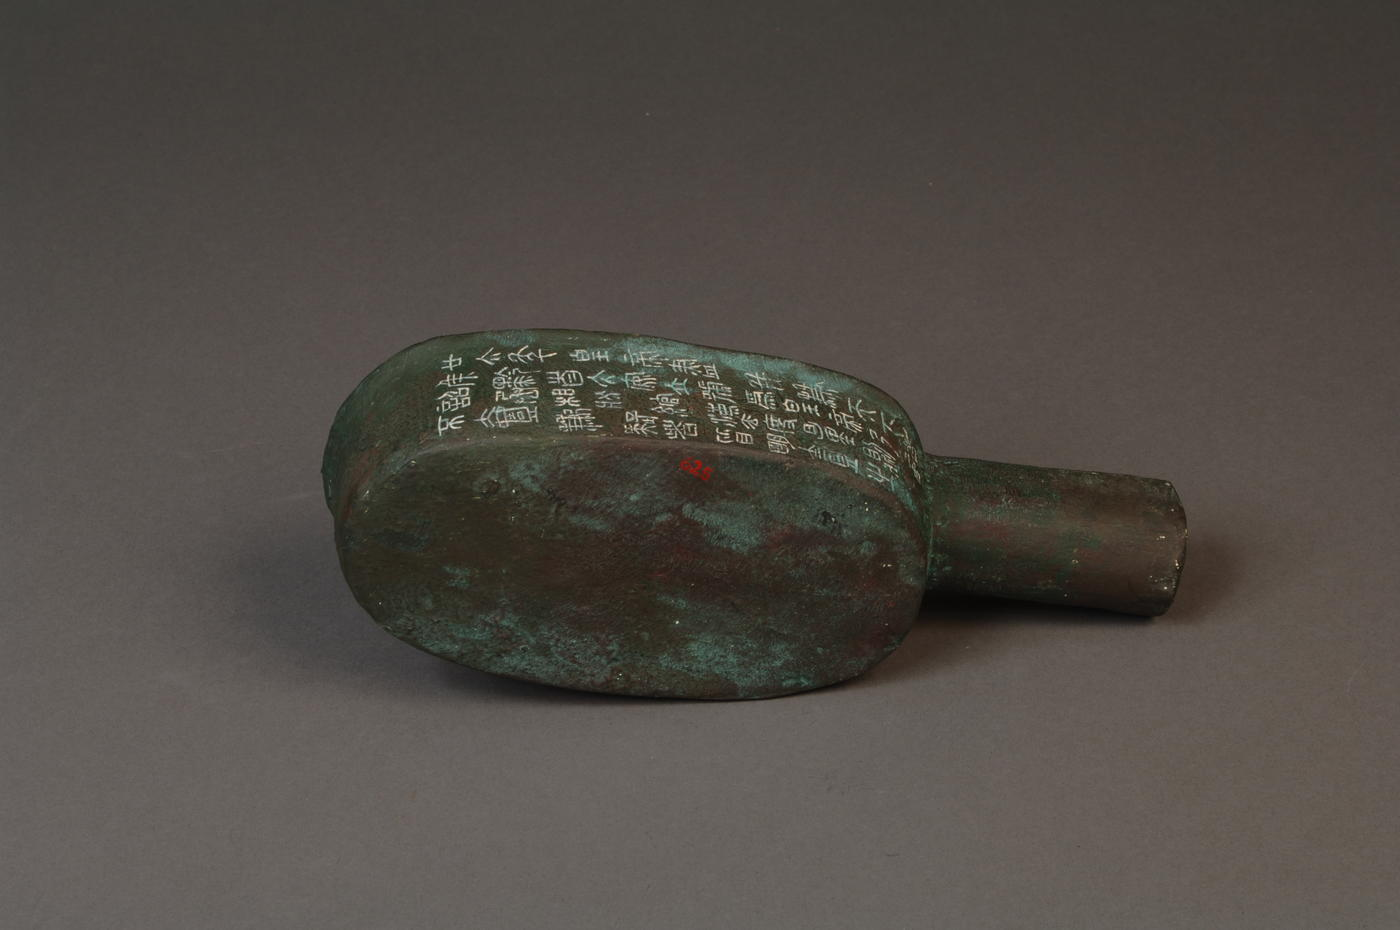 Bottom view of bronze oval measure with Chinese writing